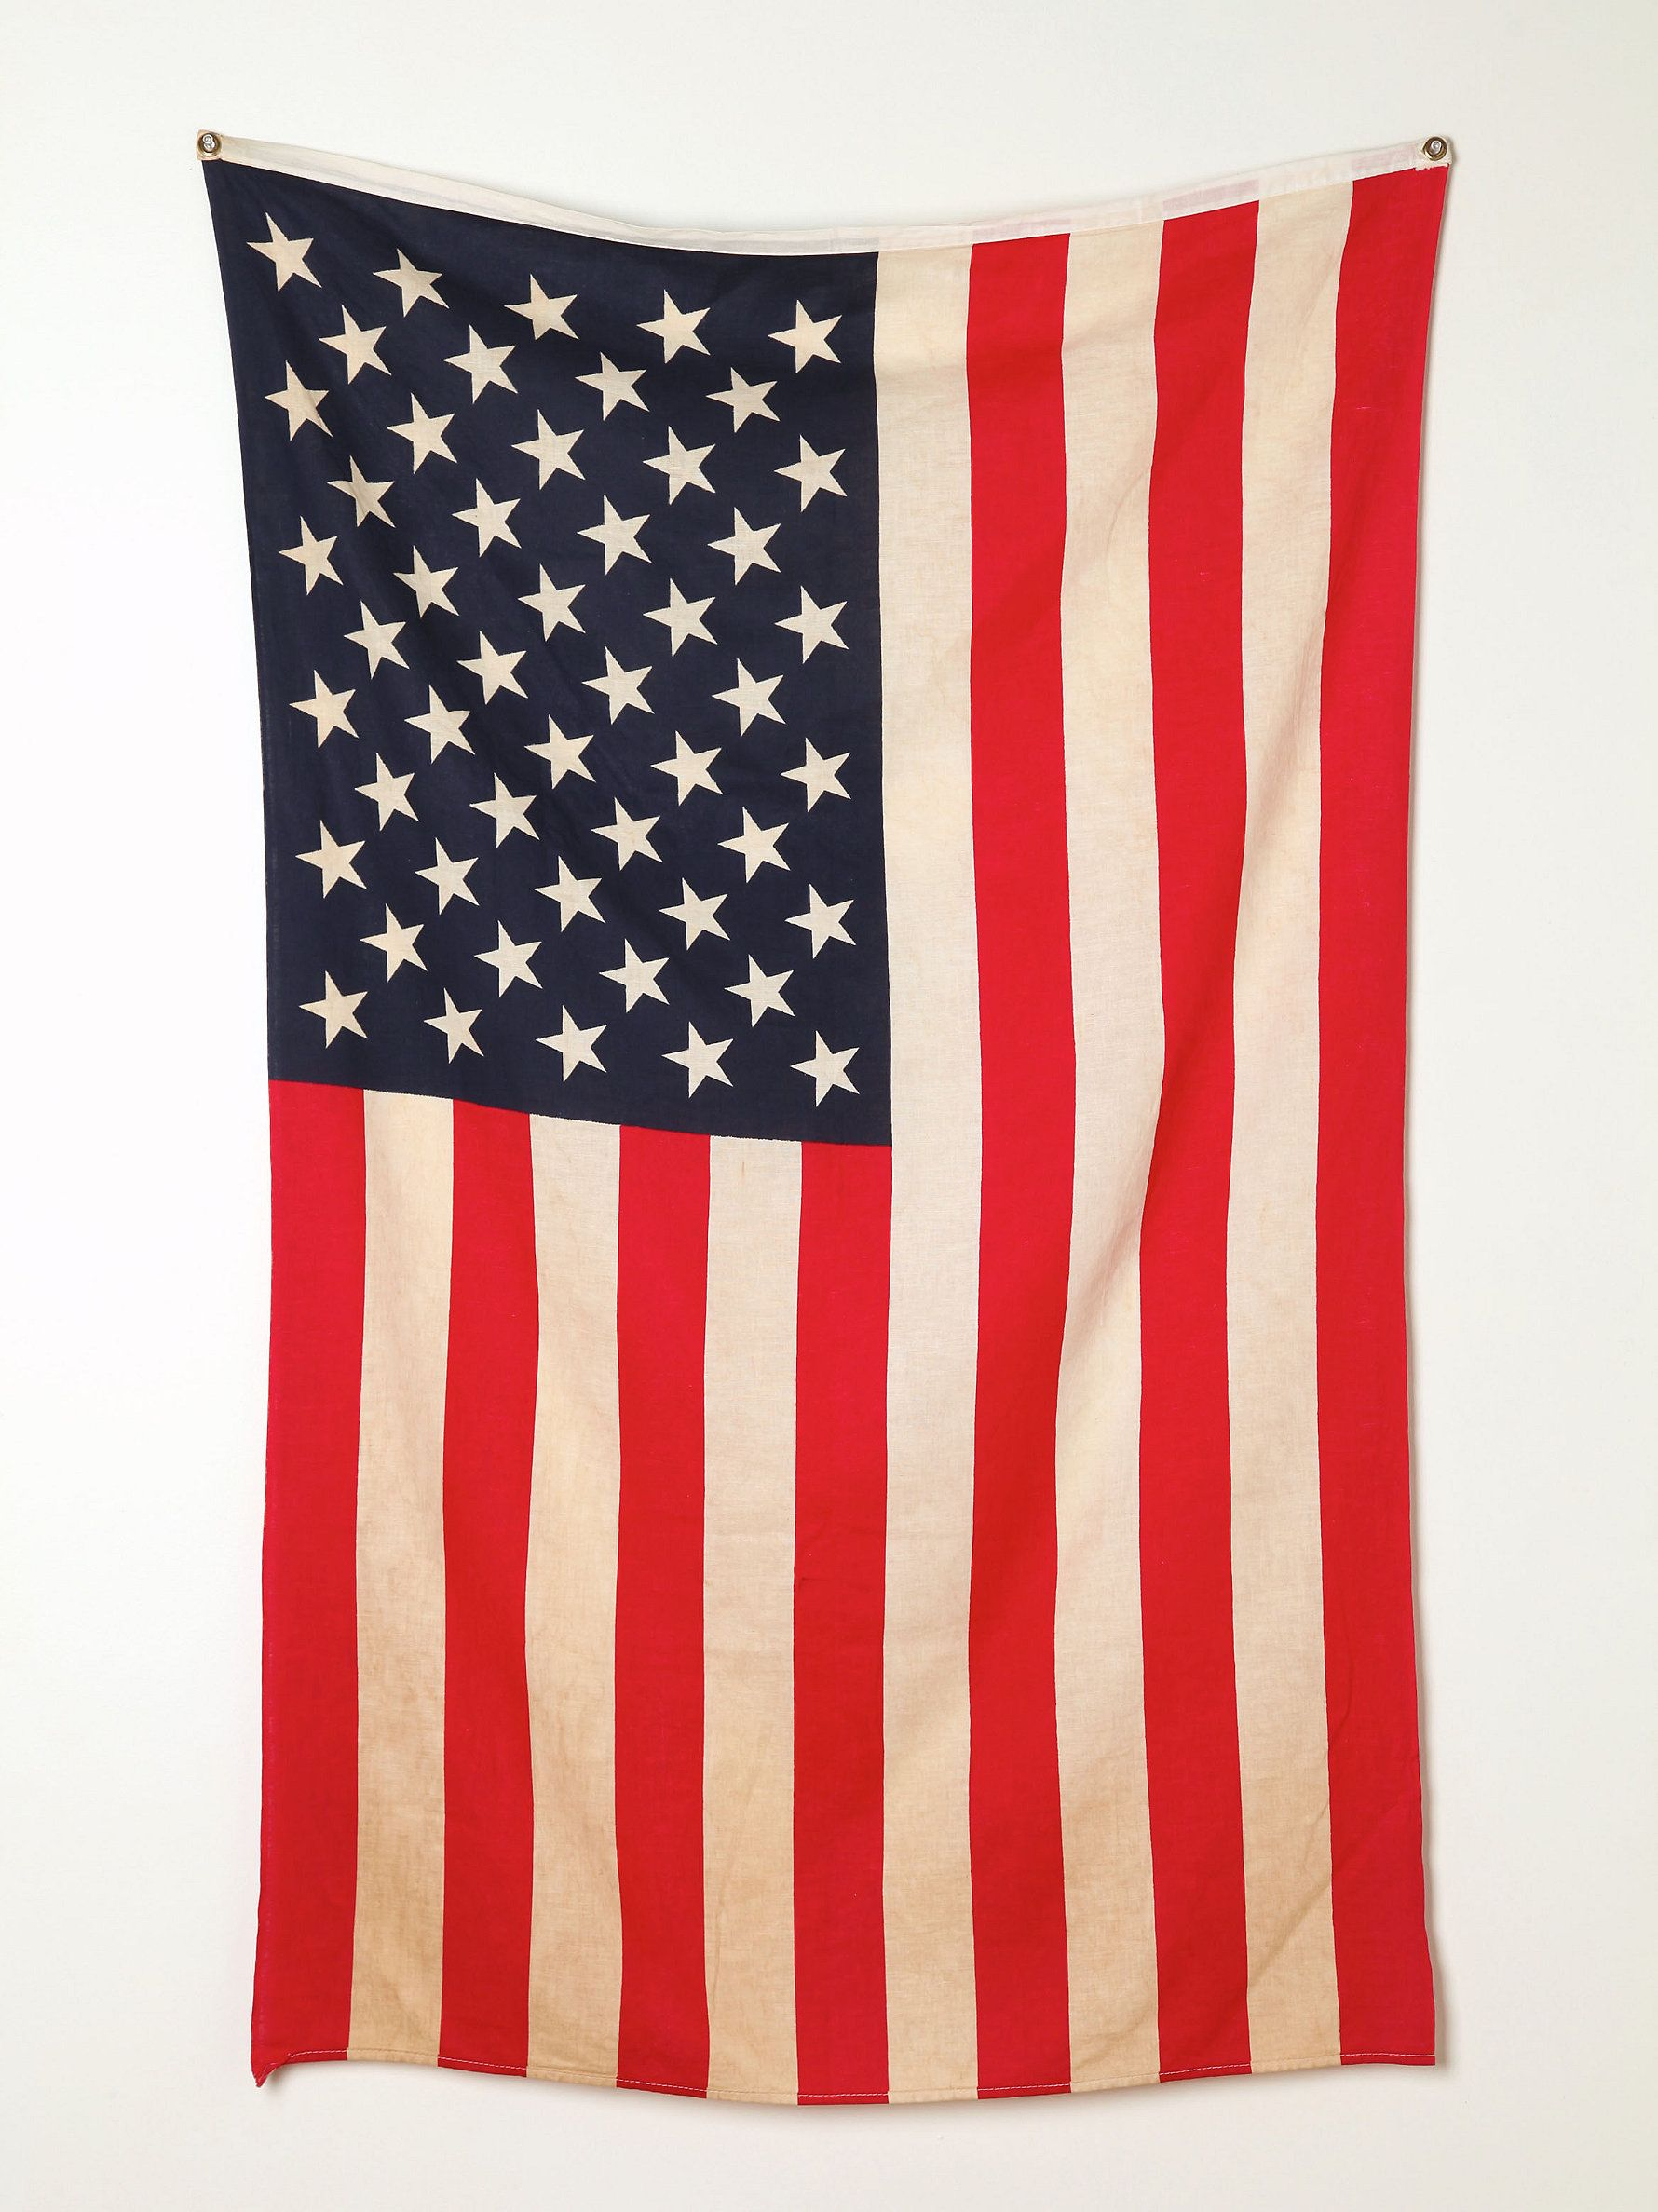 YAY Olympics! Celebrate with this American Flag by Free People! #FreePeople @freepeople